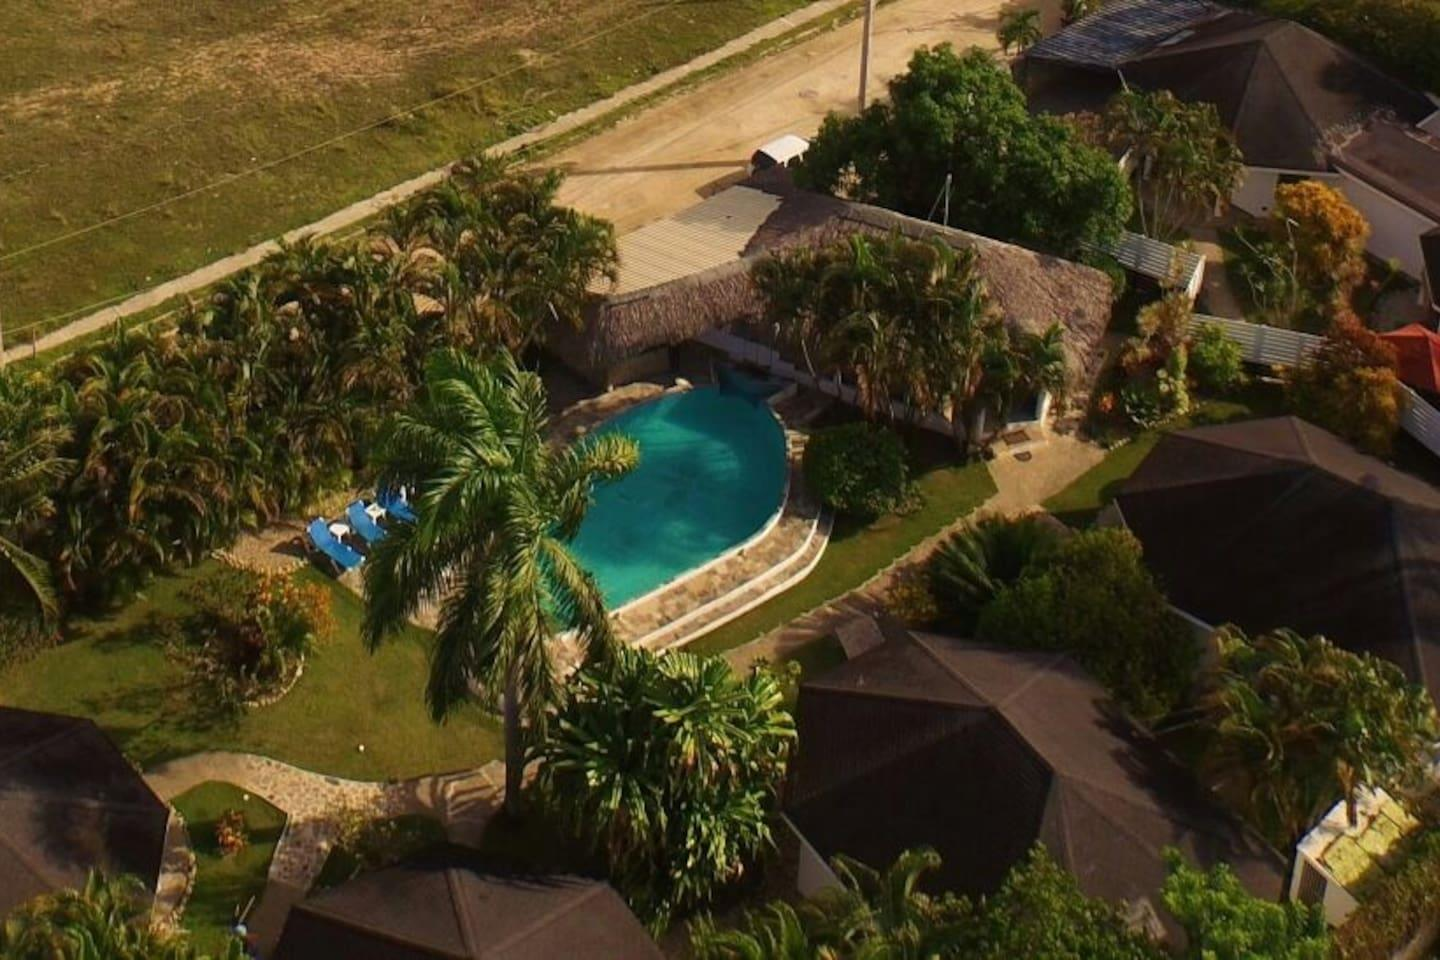 Tropical Resort with 6 Bungalows for Sale in Cabarete